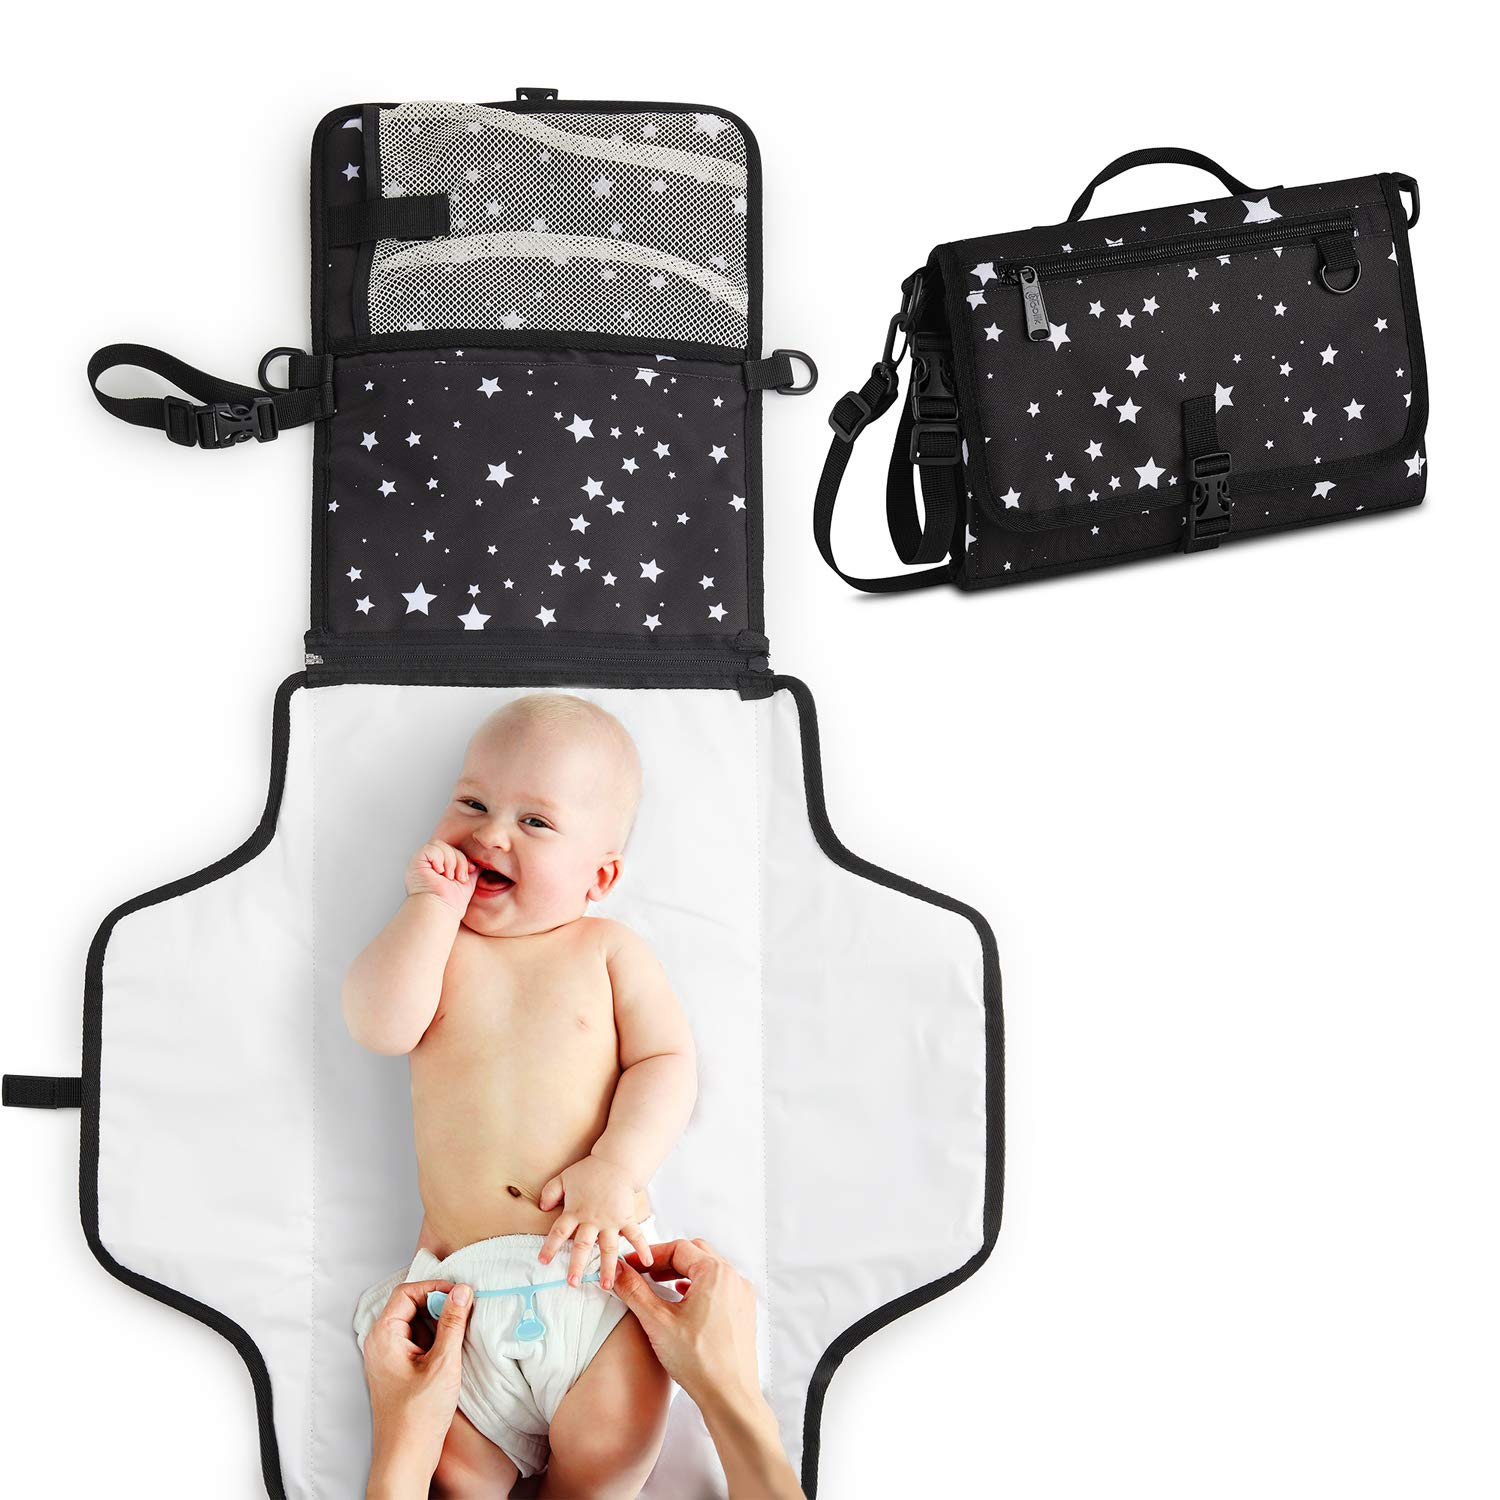 Toolik Baby Diaper Clutch with Waterproof Portable Changing Pad for Quick Change During Stroller Walks - Foldable, Detachable and Wipeable Mat Station with Shoulder Strap, Black with White Stars by Toolik-Parenting Made Easy